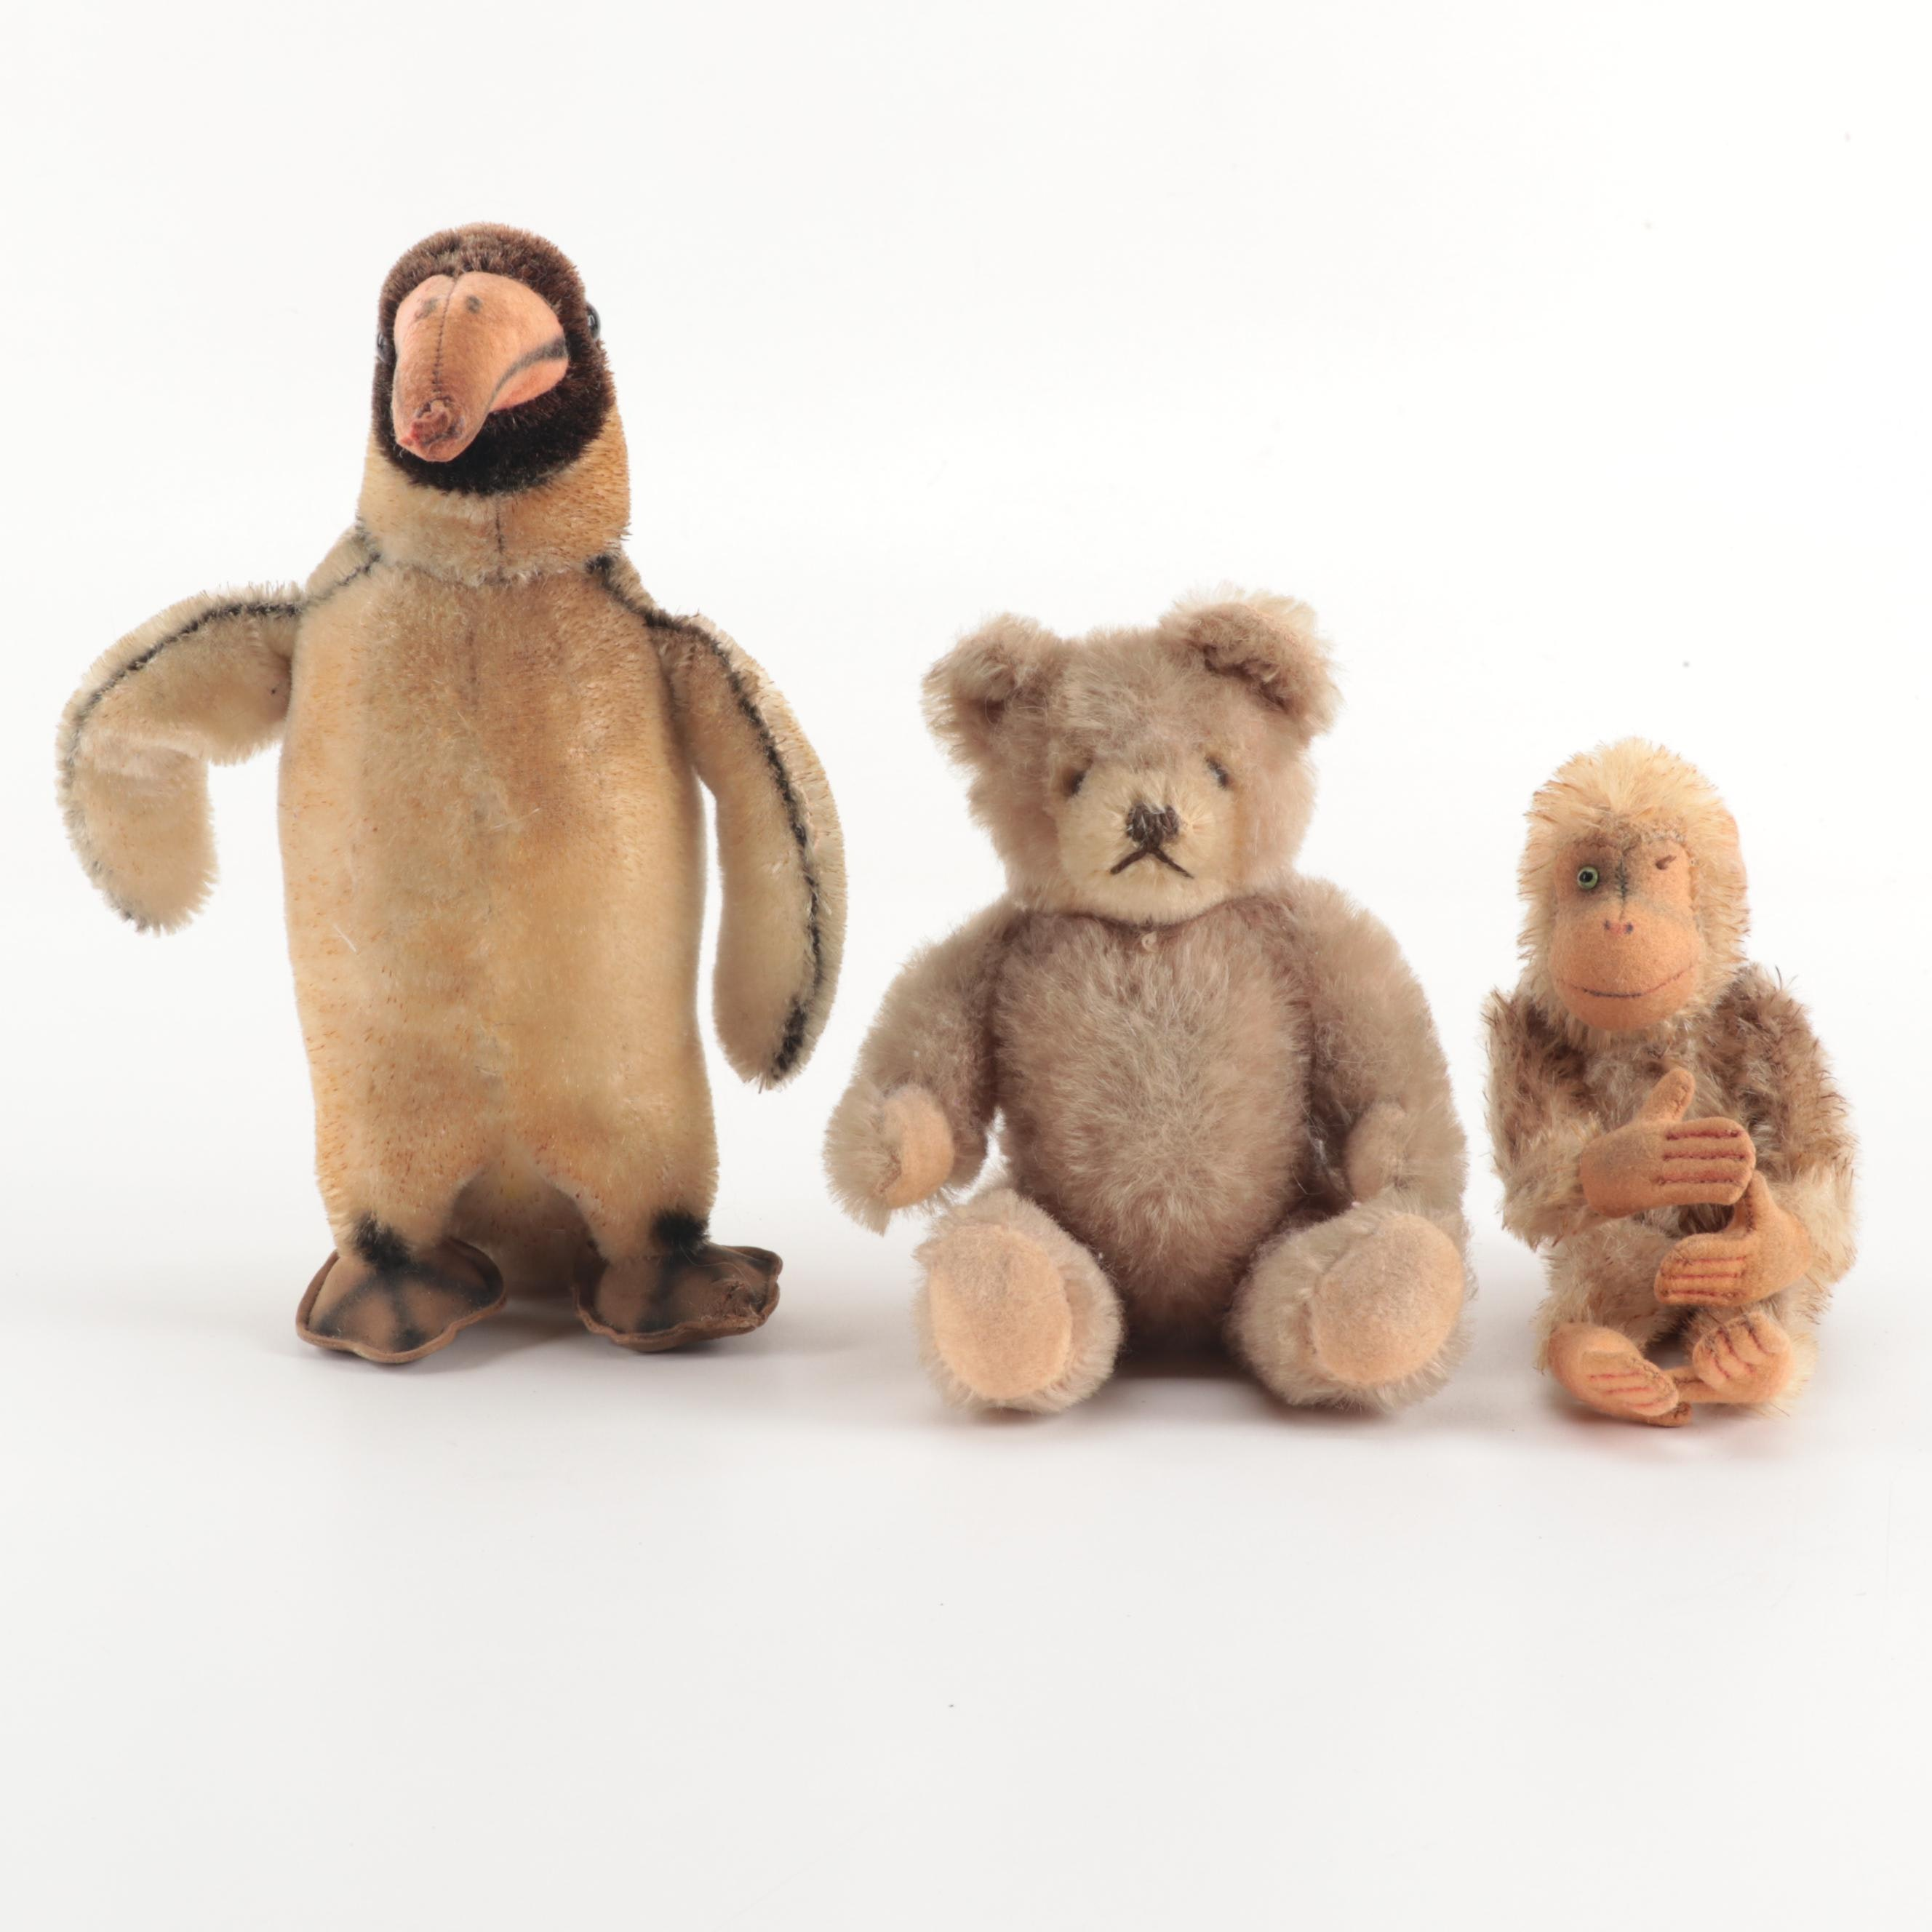 Vintage Steiff Style Penguin, Teddy Bear and Monkey Stuffed Toys